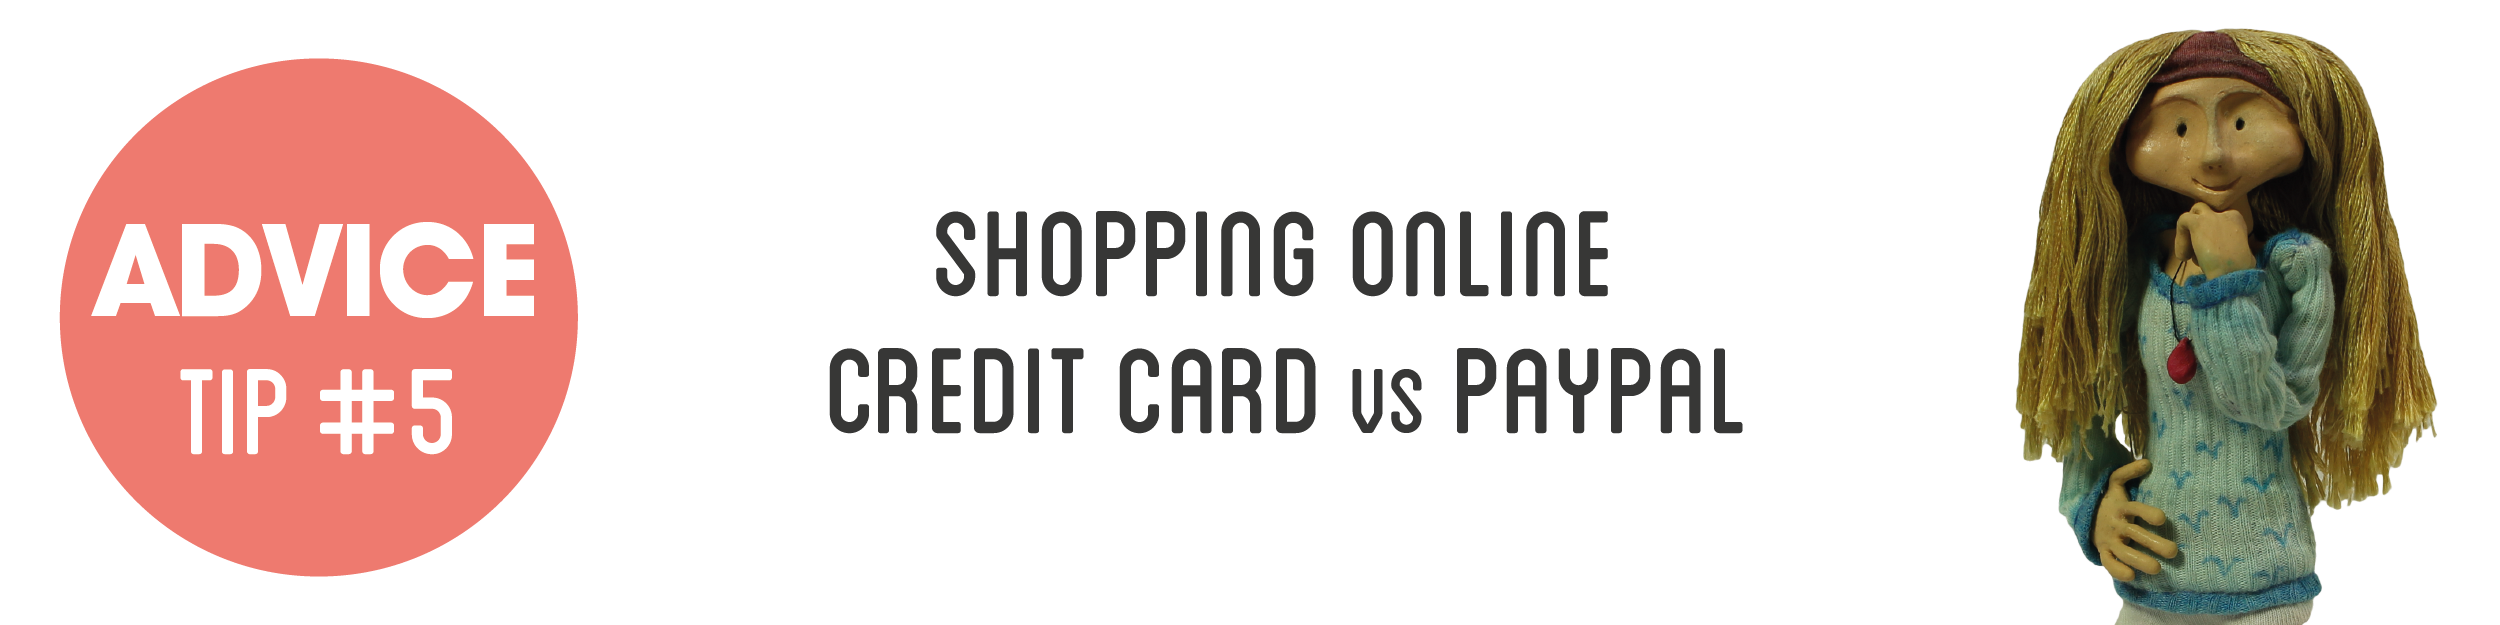 Advice Tip #5 Shopping online – credit card vs paypal